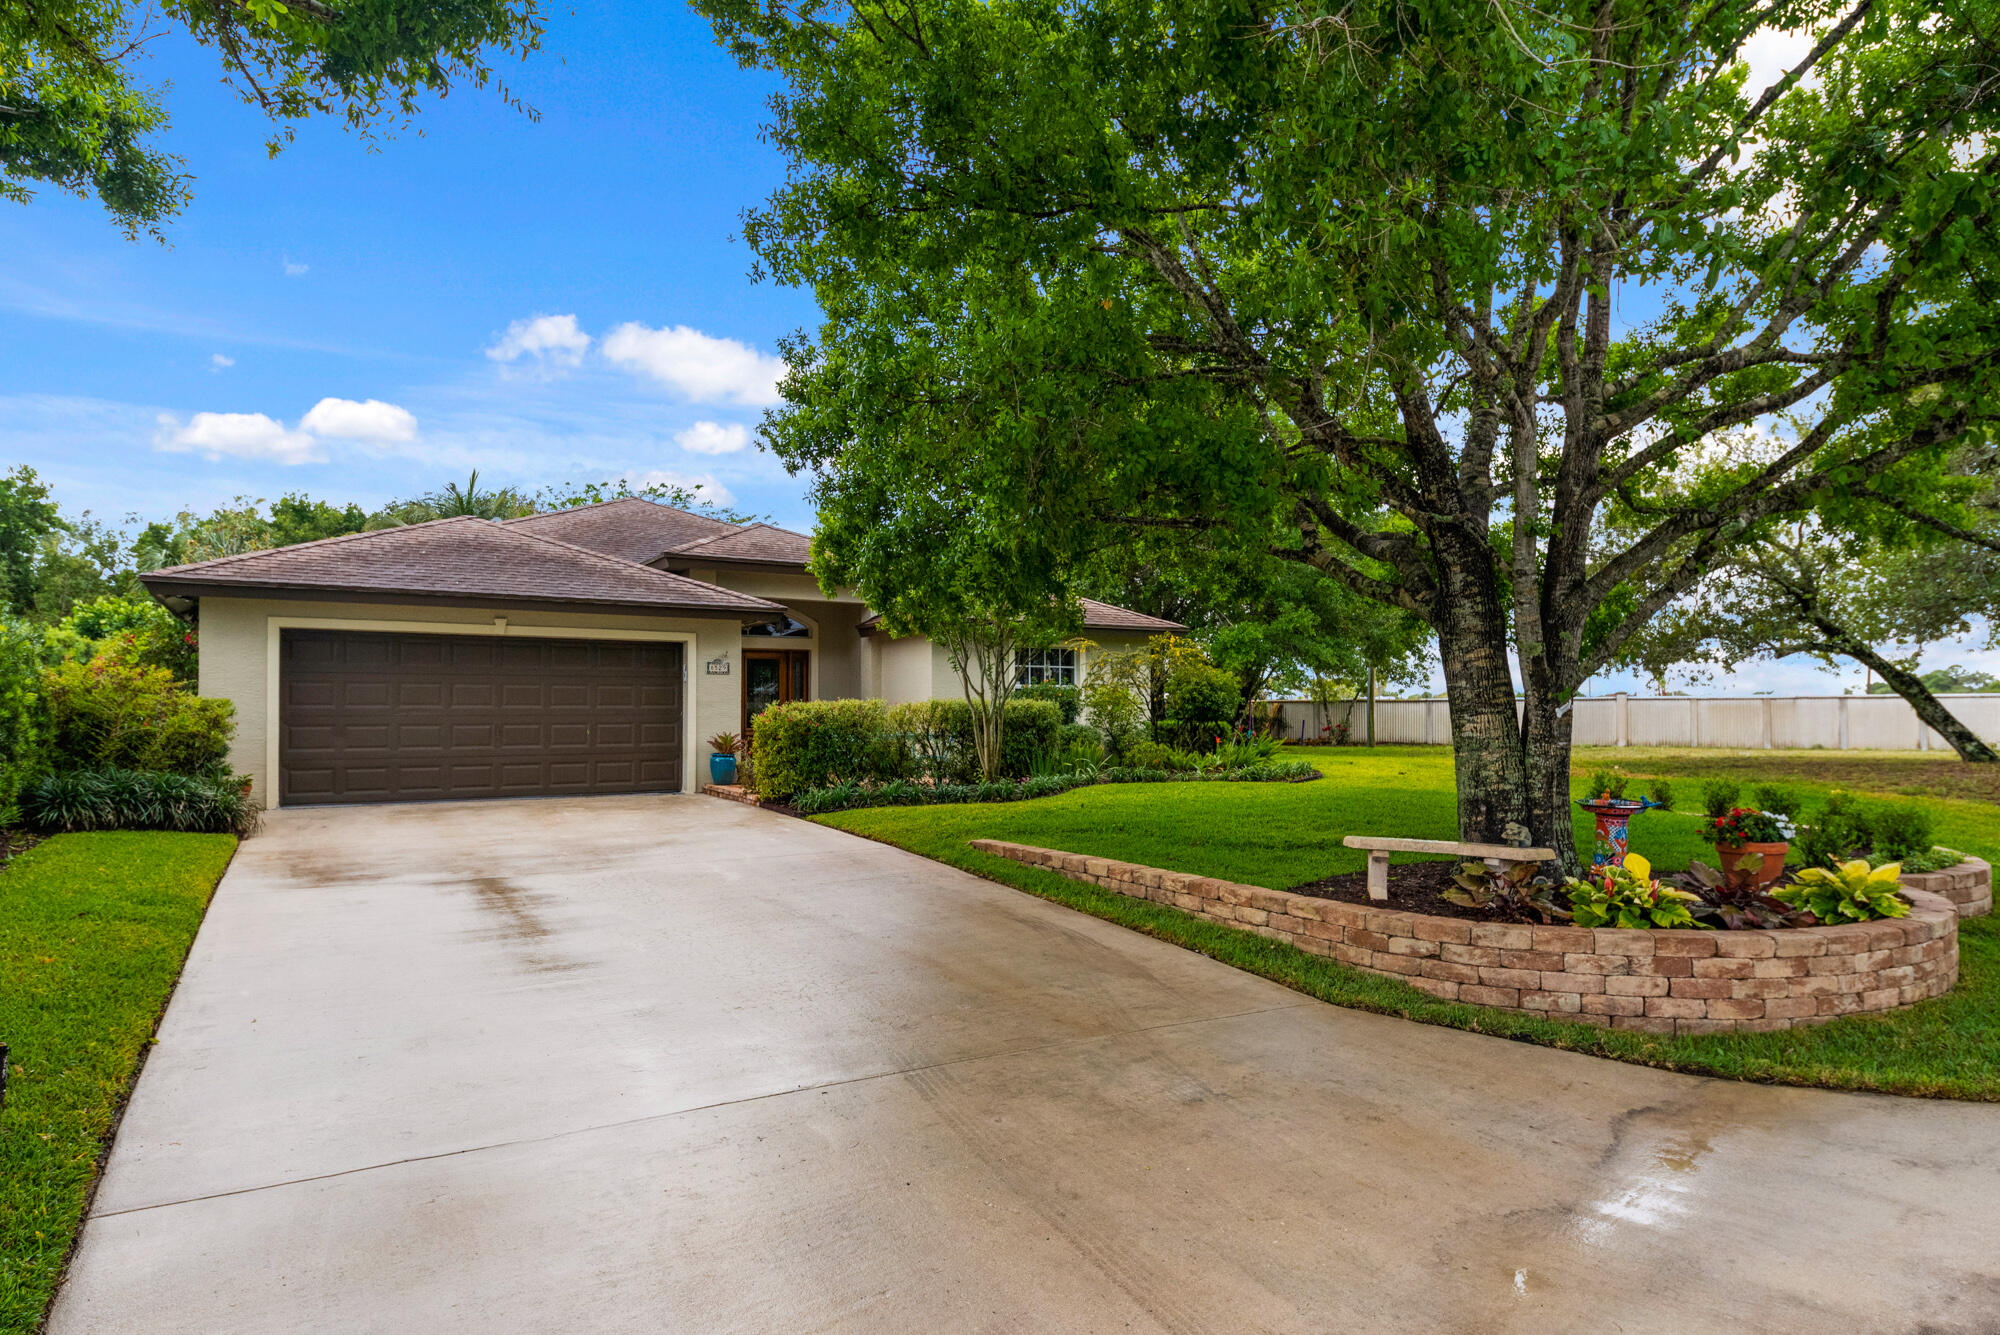 Home for sale in Pinetree Terrace Hobe Sound Florida